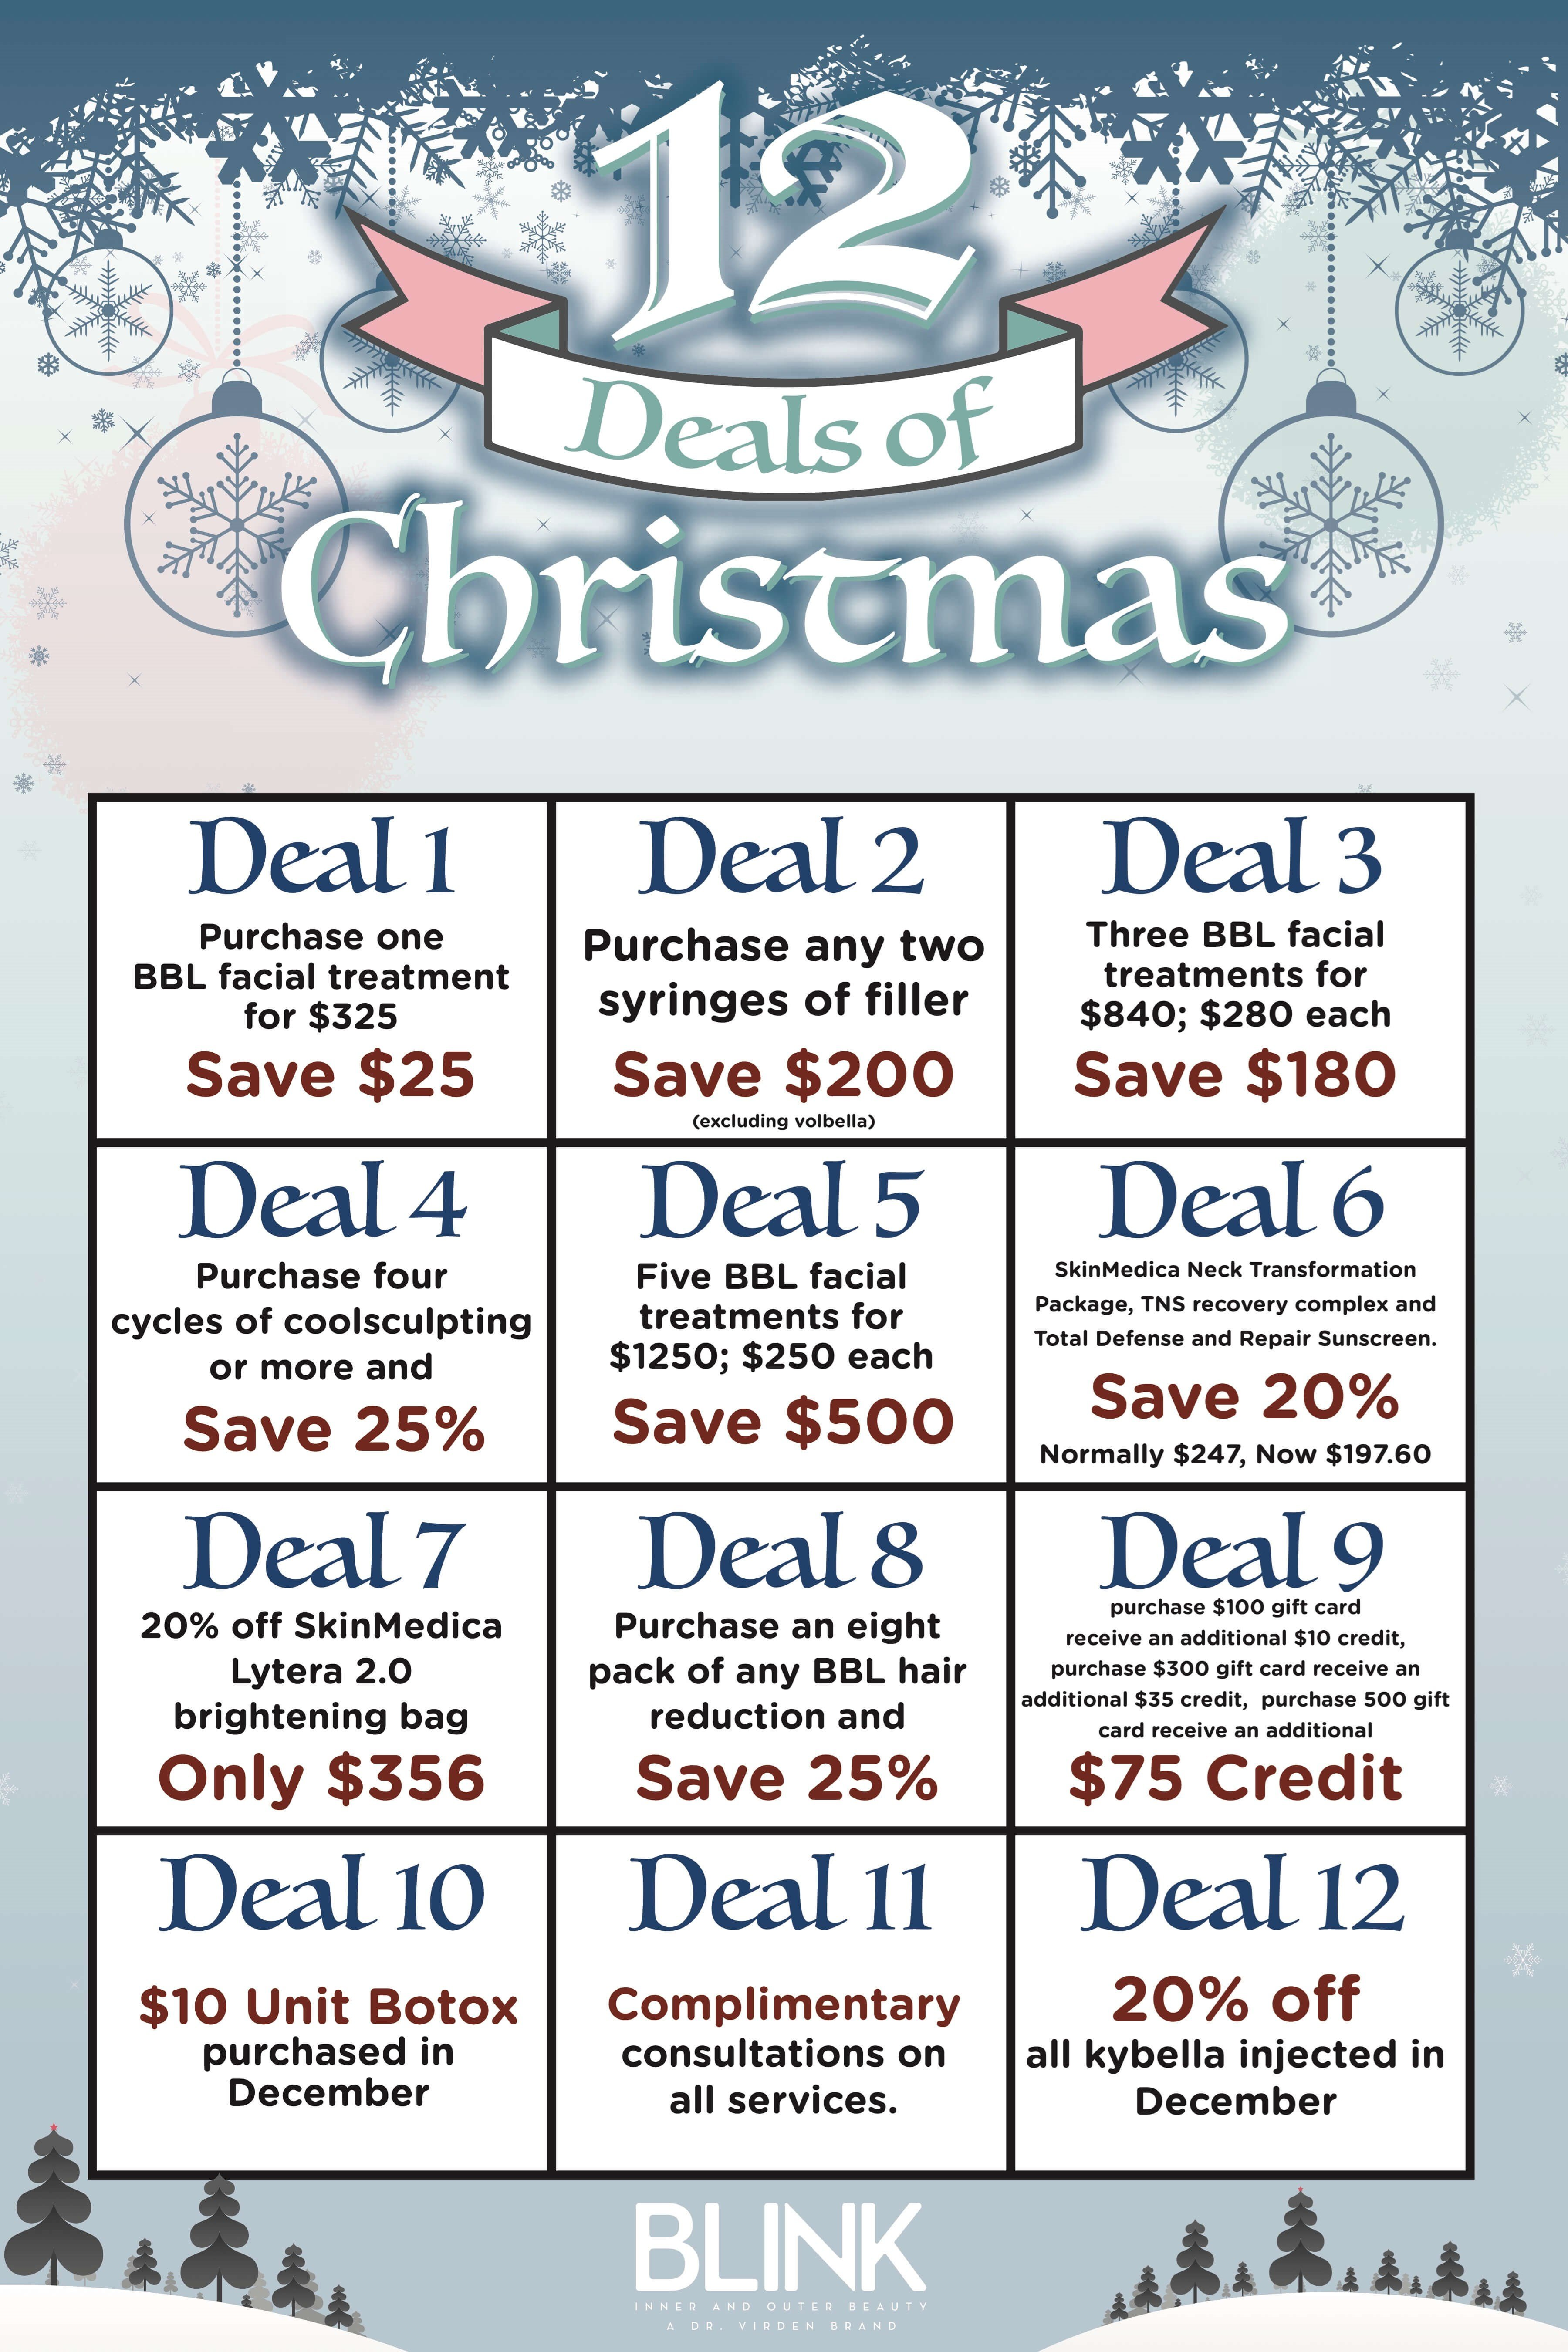 Medical spa special offers for 12 days of christmas salon specials